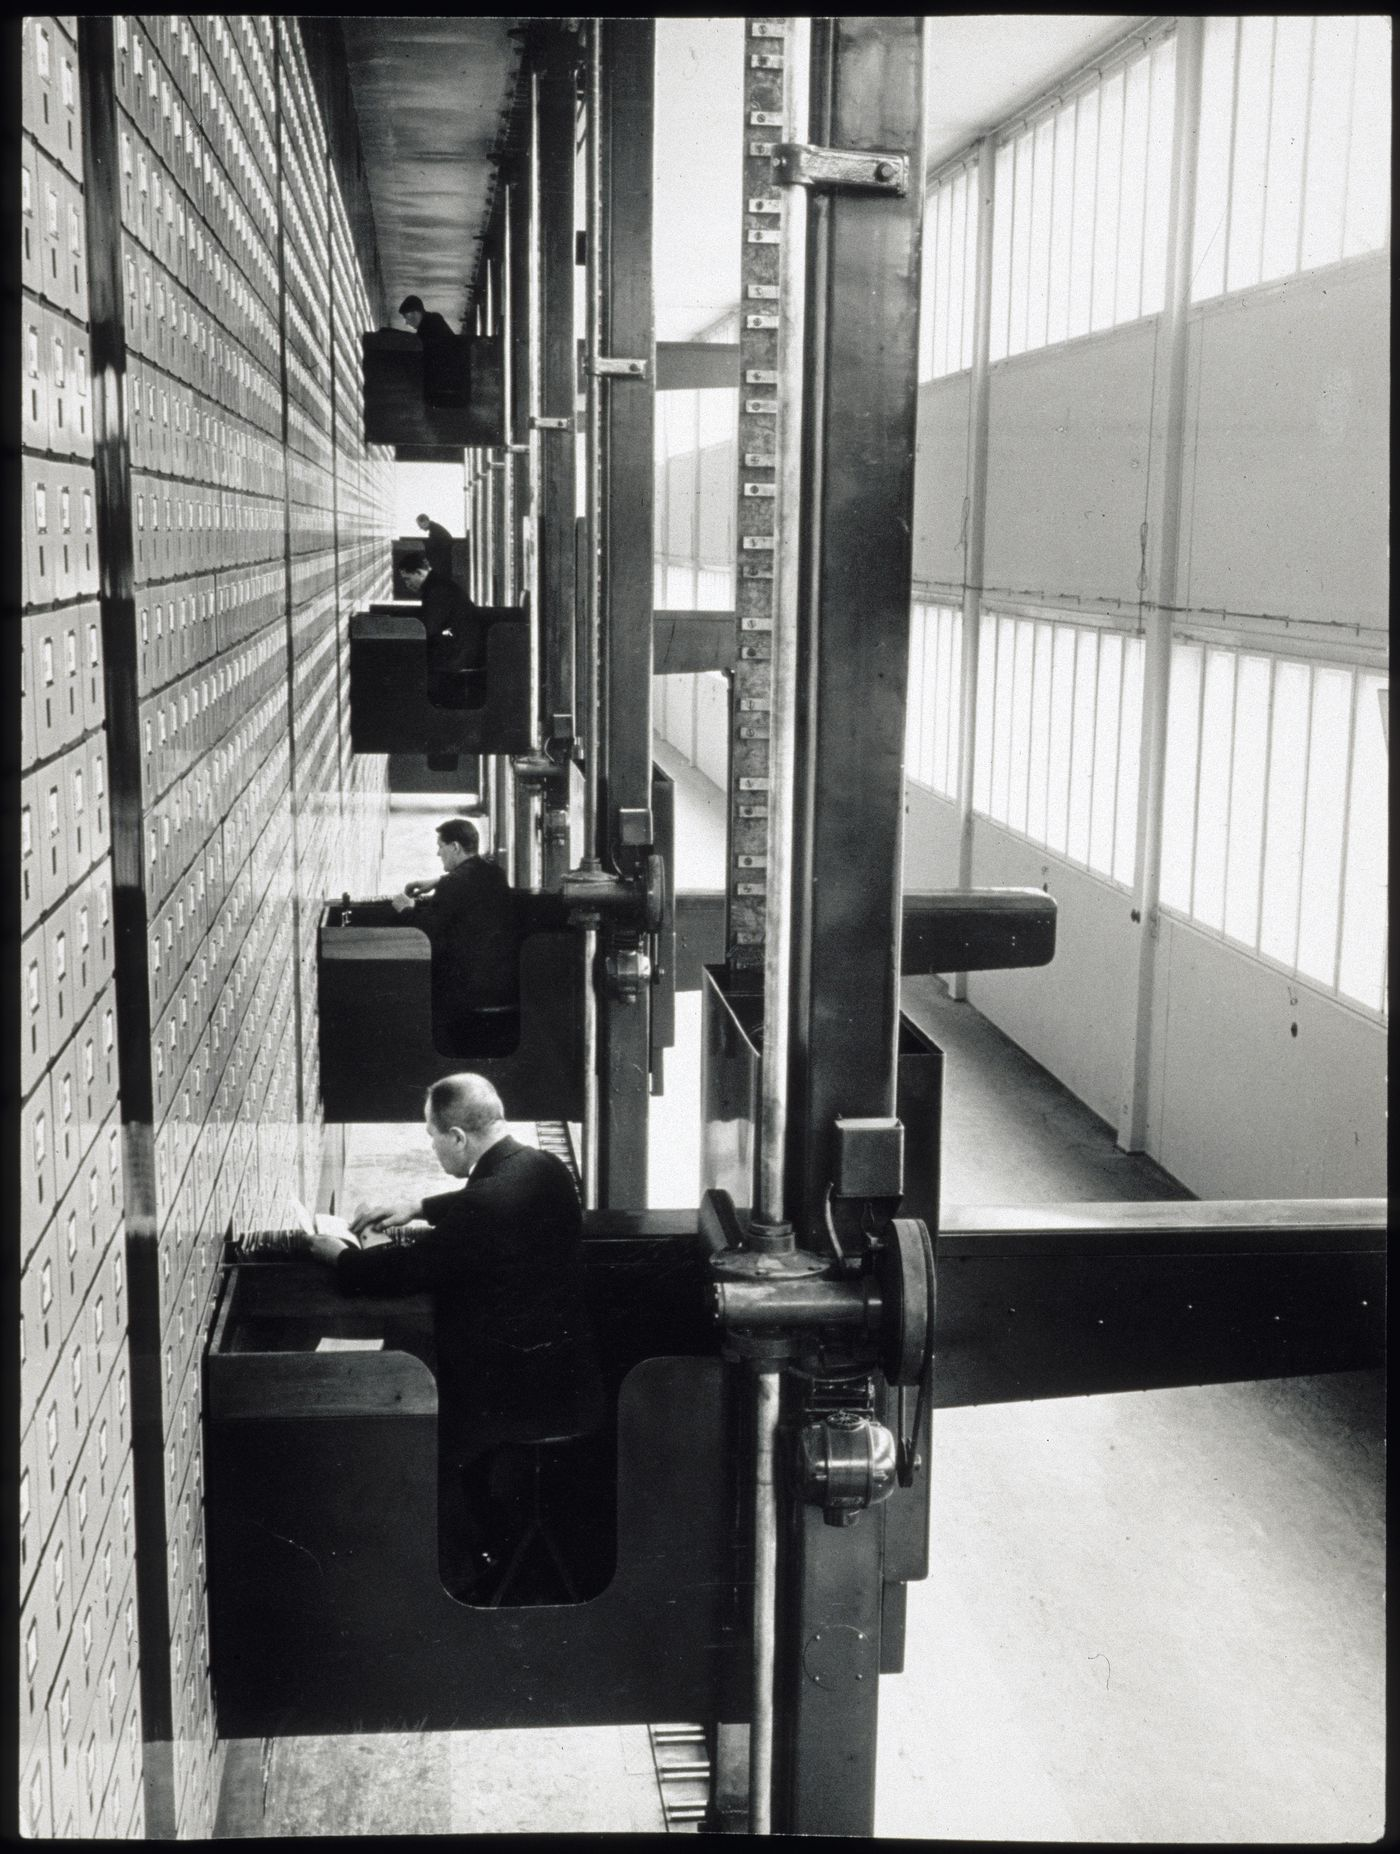 Interior view of the Central Social Insurance Institution showing men working in mobile work stations used to access the card catalog drawers, Prague, Czechoslovakia (now Czech Republic)